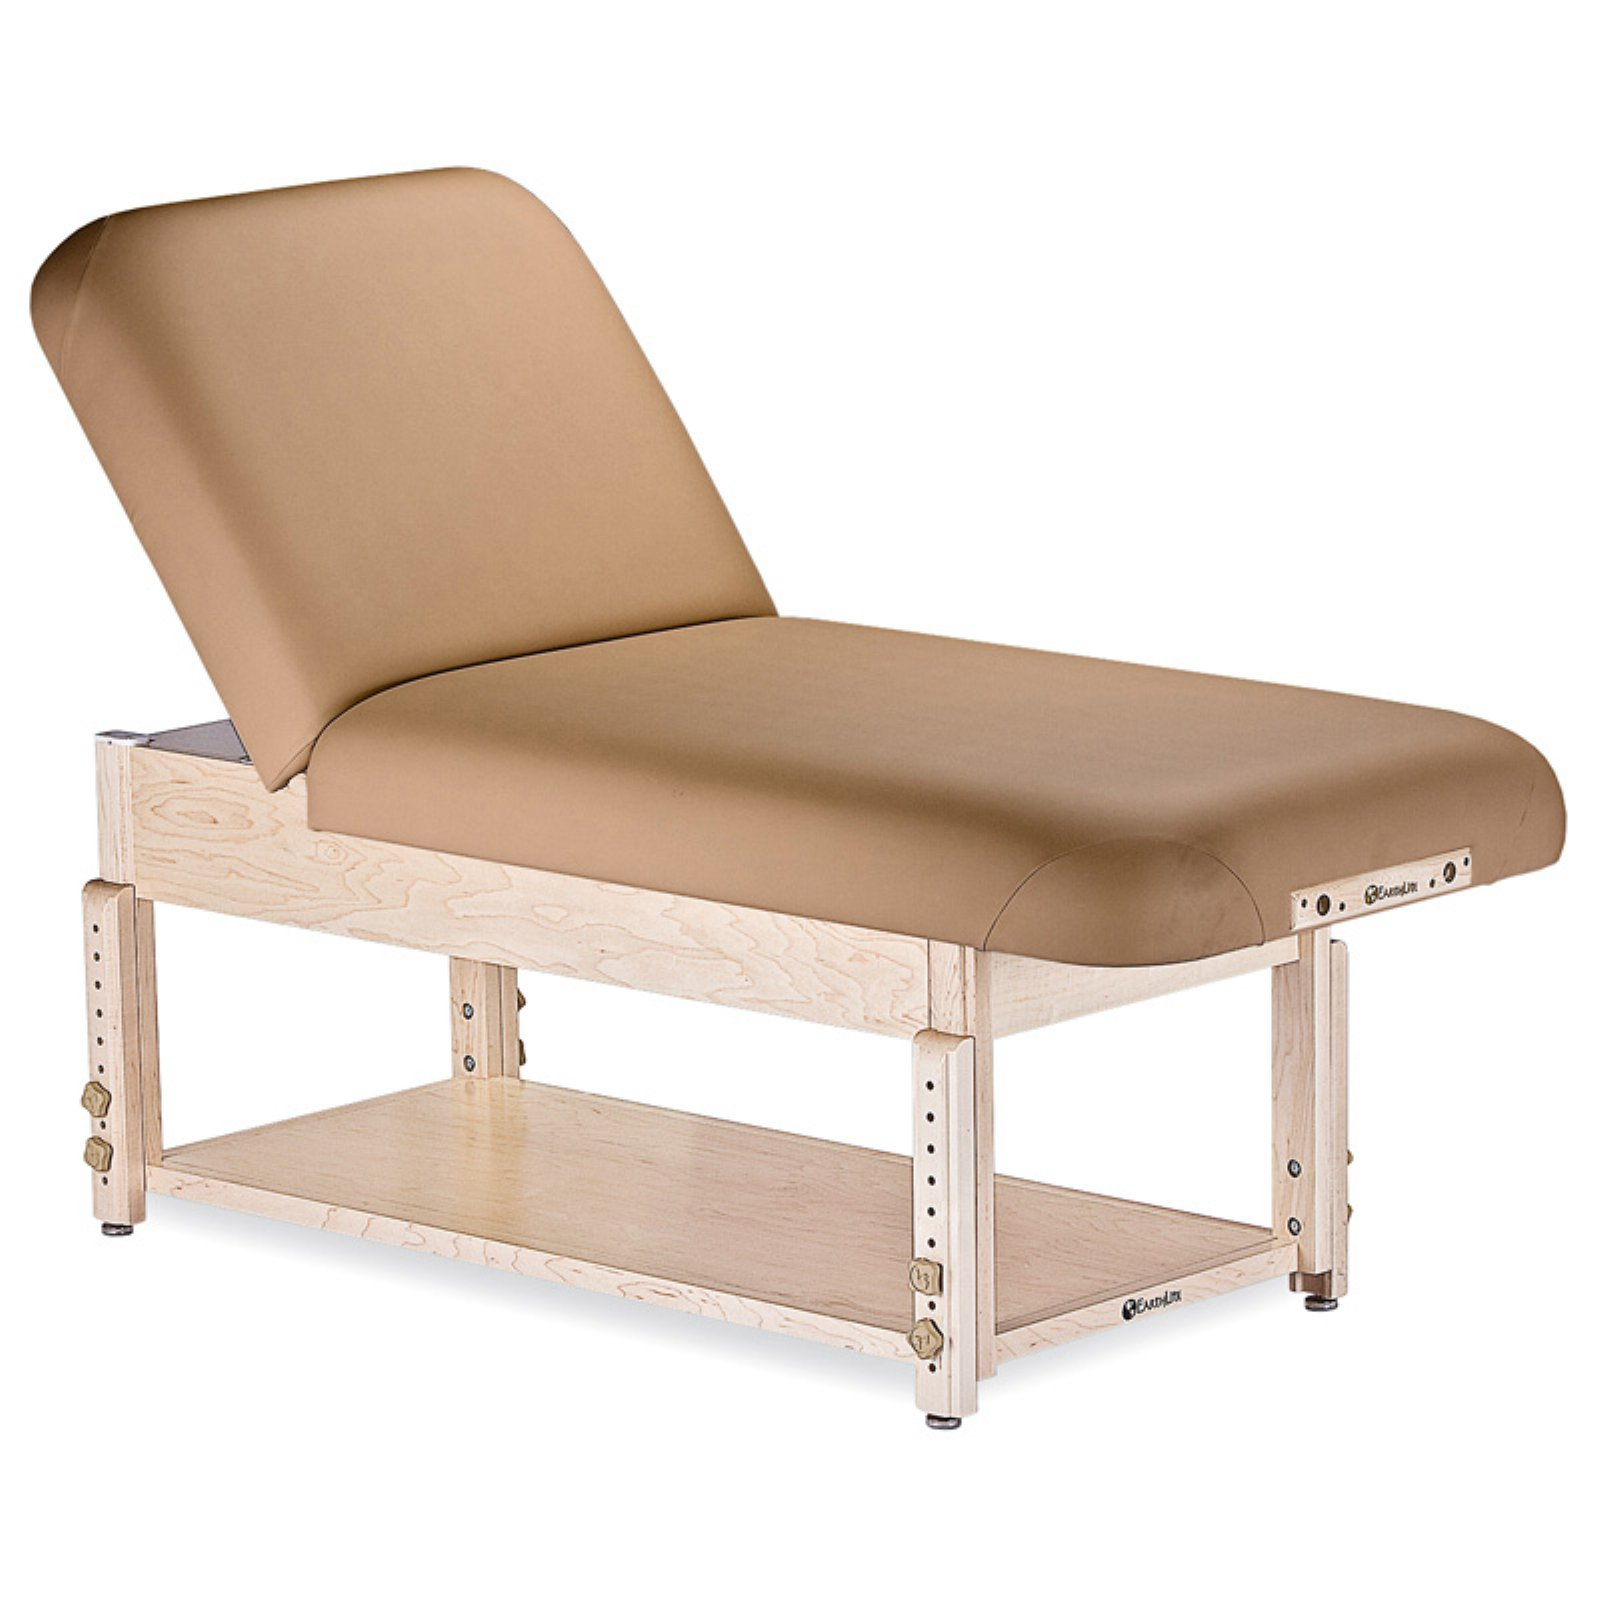 EarthLite Sedona Stationary Tilt Massage Table with Shelf